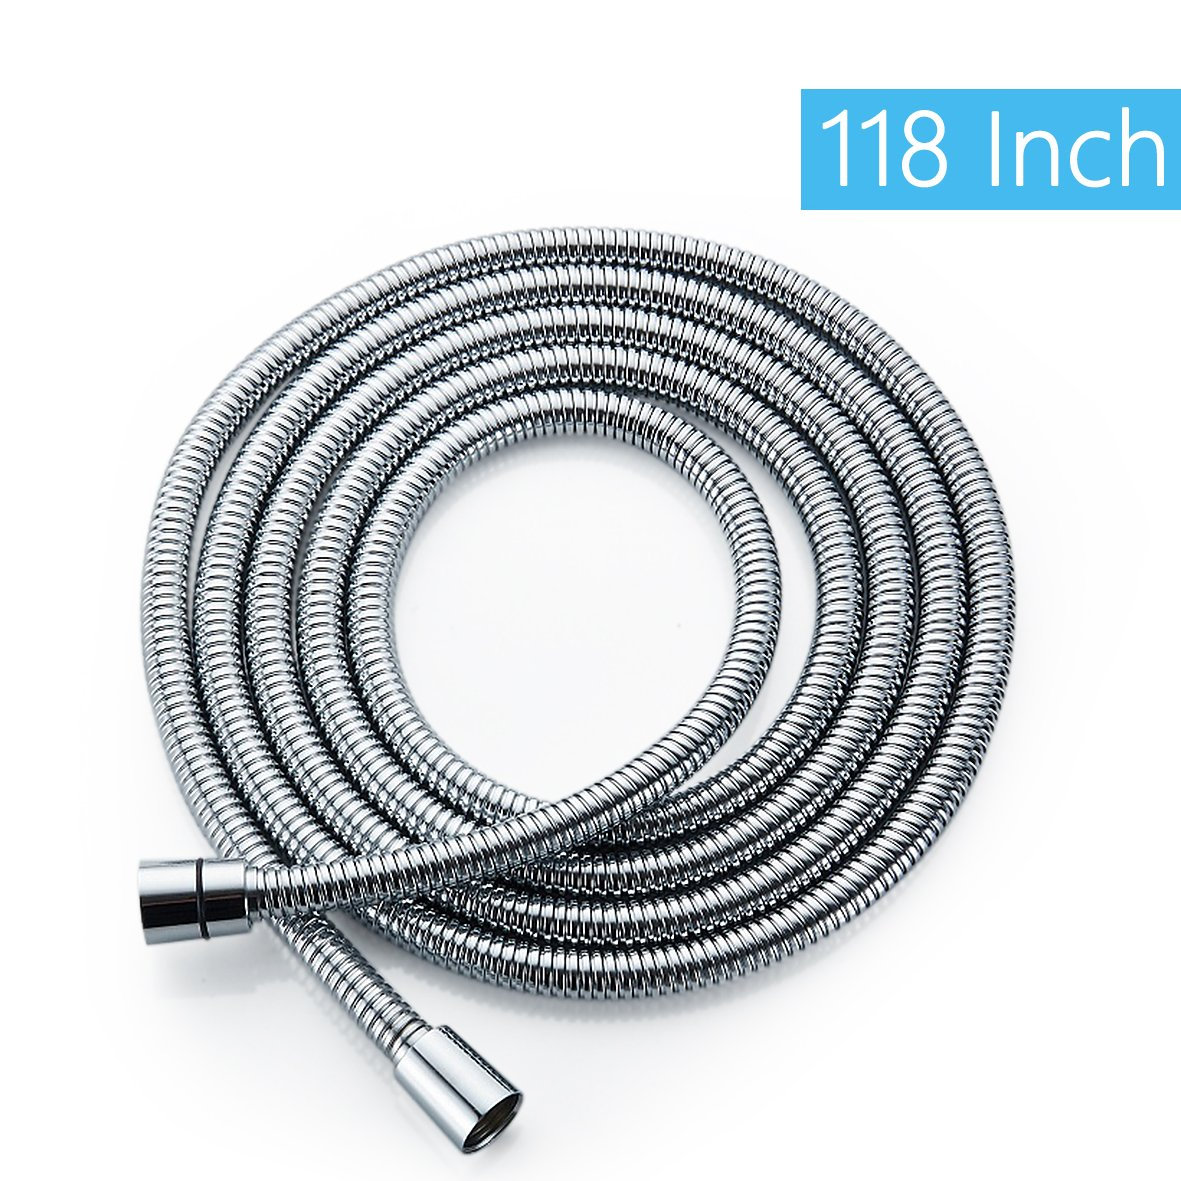 SOQO Bathroom Stainless Steel Water Hose Flexible & Lightweight Shower Hose (118 inch)